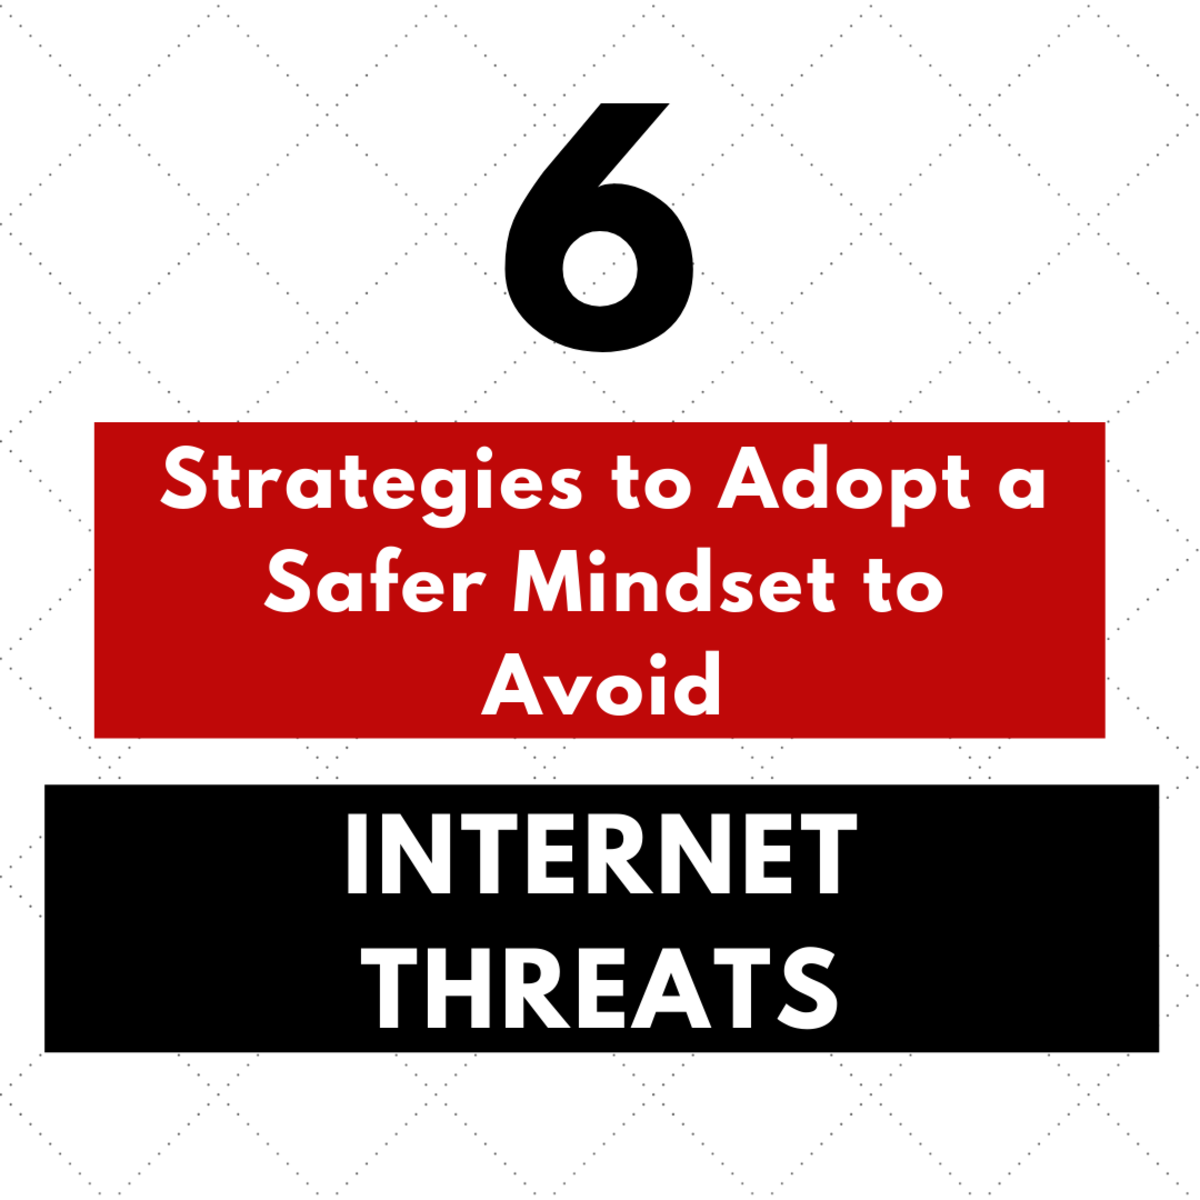 6 Strategies to Adopt a Safer Mindset to Avoid Internet Threats